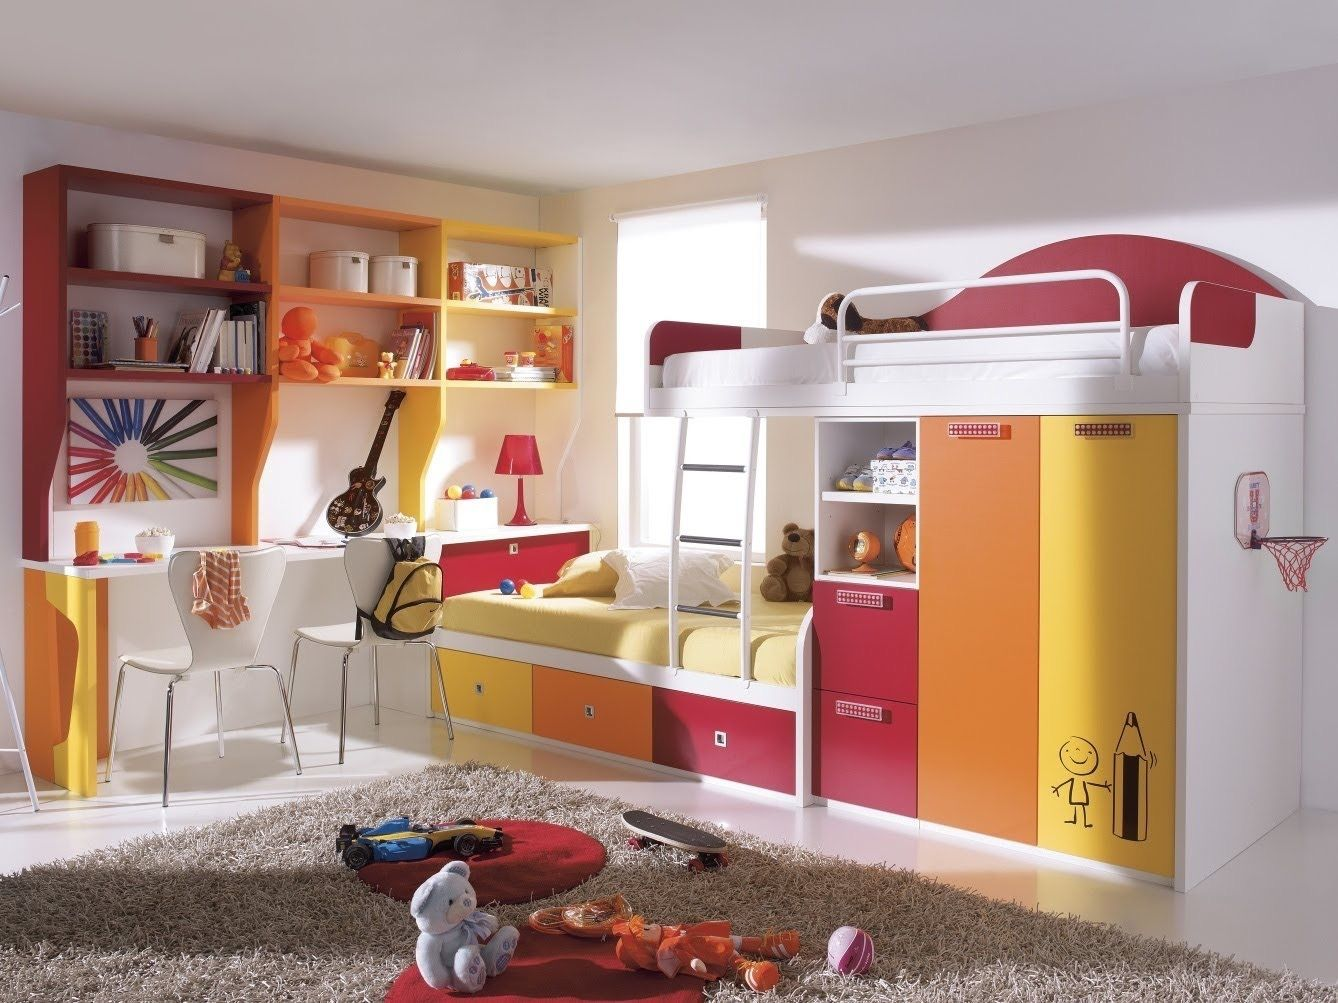 Bedroom ideas with loft bed  Pin by Valentina Rennee on Kids Room  Pinterest  Kids rooms and Room